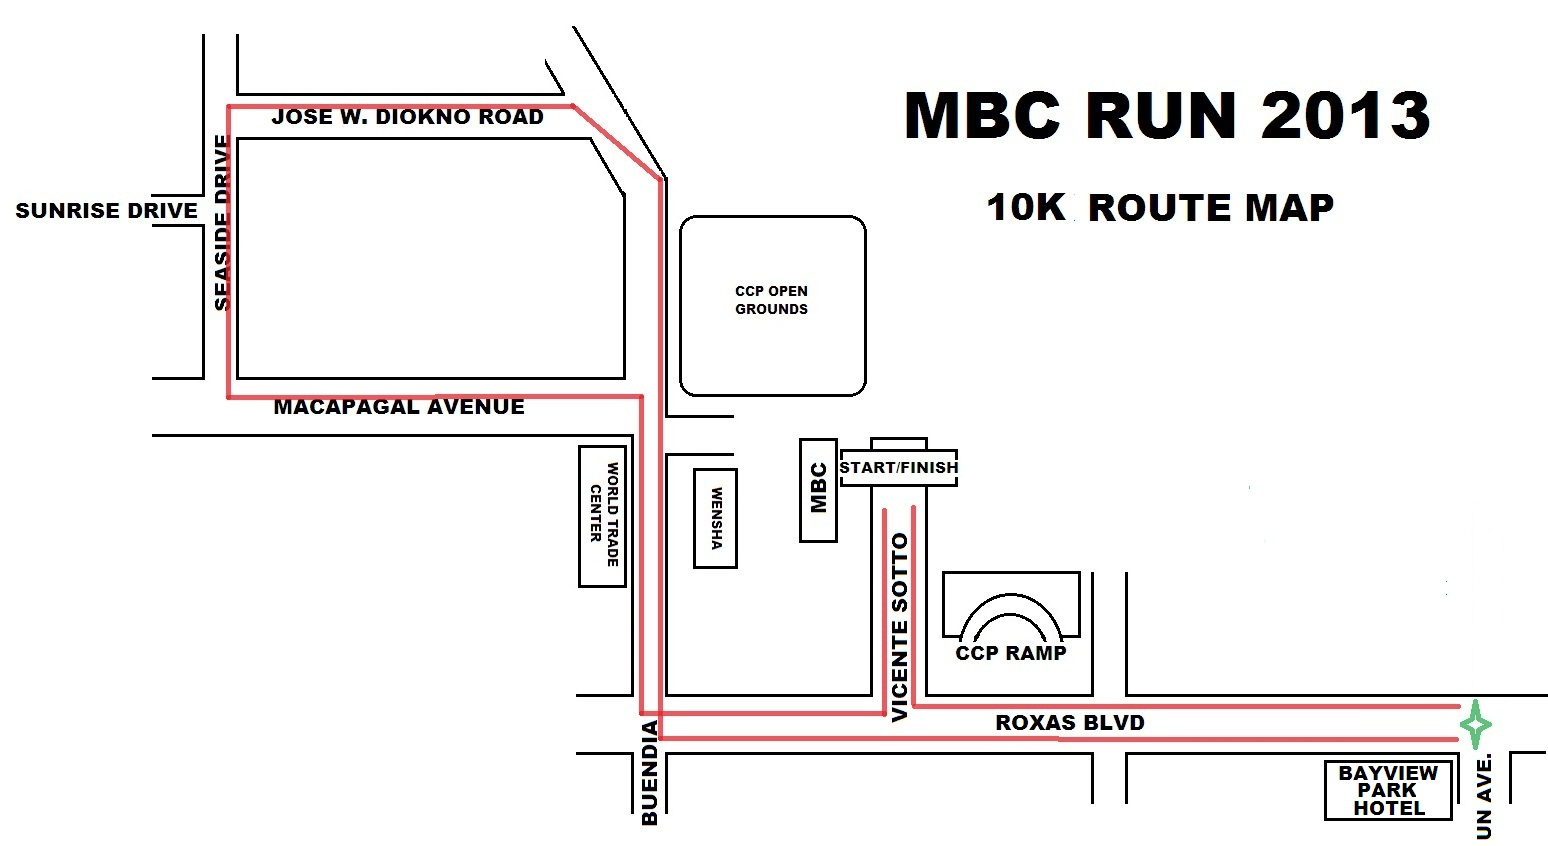 manila-bay-clean-up-run-2013-route-map-10k